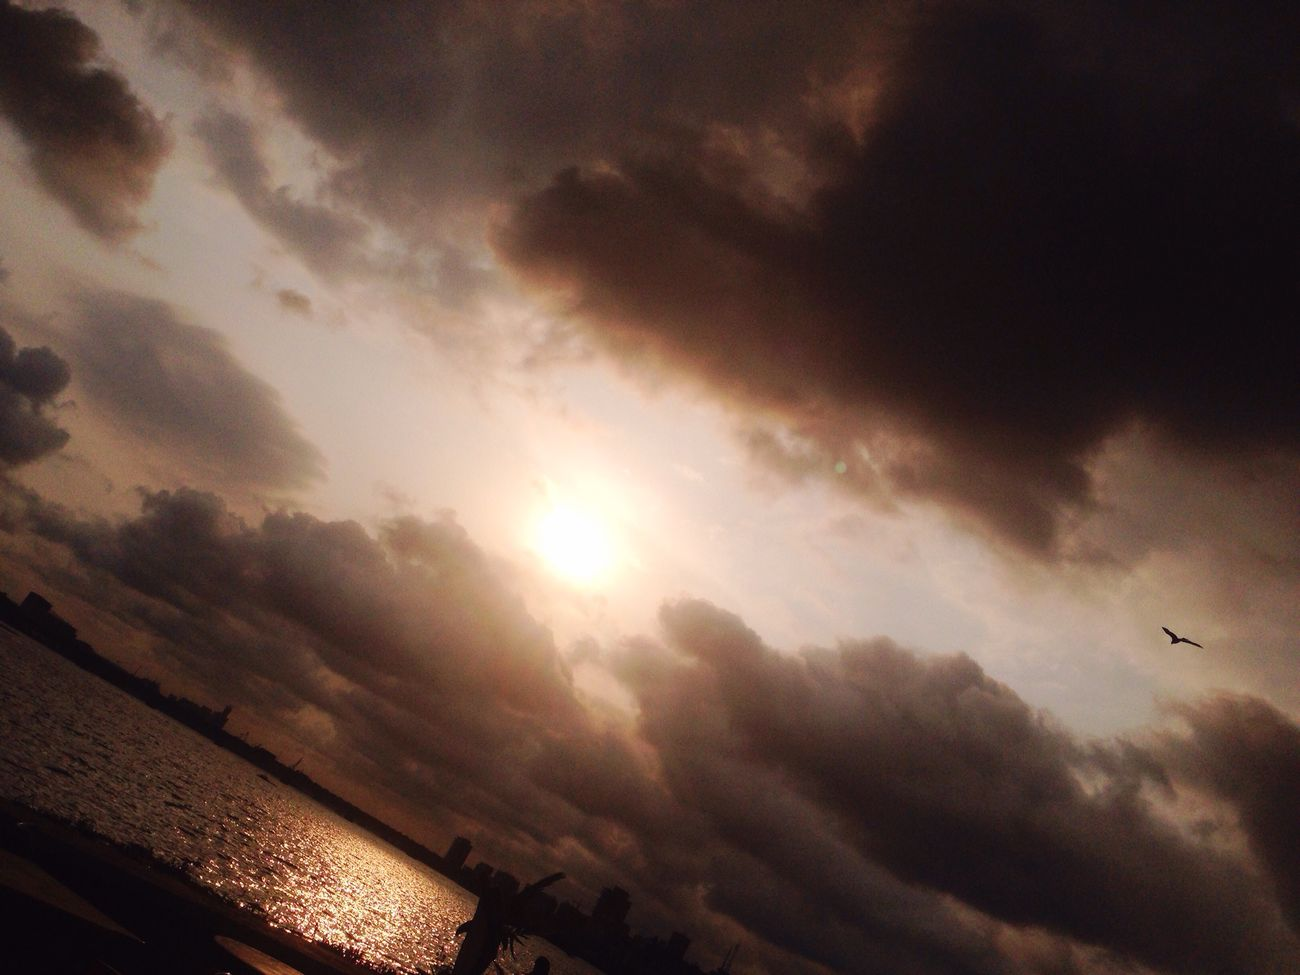 Sky Sunset Sun Nature IPhoneography Morning Light EyeNatureLover Eyem Market Sea And Sky Sky And Clouds Skylovers Cloud Clouds And Sky Sea Africa Sunlight EyeEm Best Shots EyeEm Nature Lover Sweet Instagood I Love It ❤ I LOVE PHOTOGRAPHY